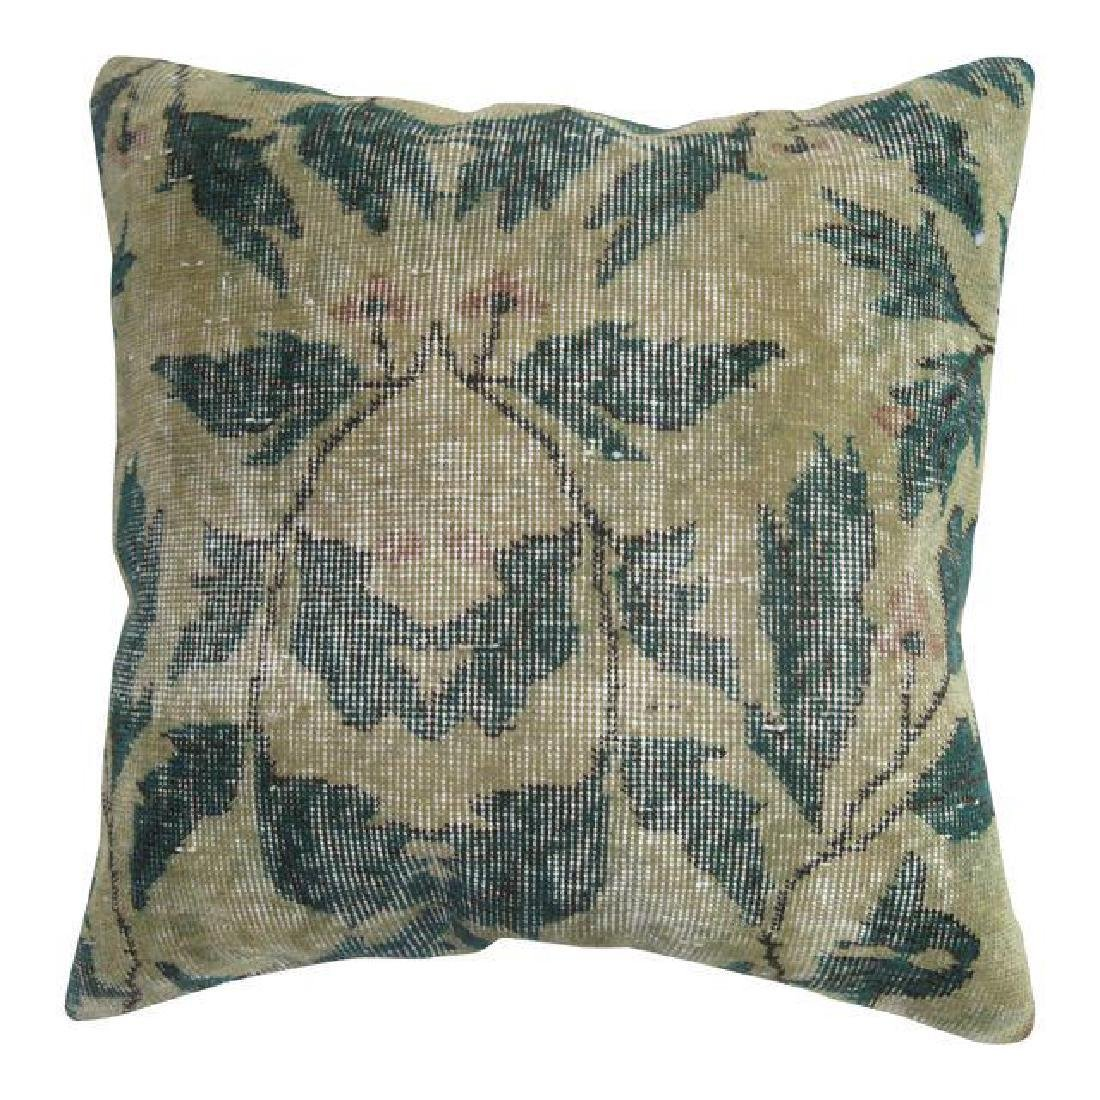 Shabby Chic Green Rug Pillow 1.6x1.6